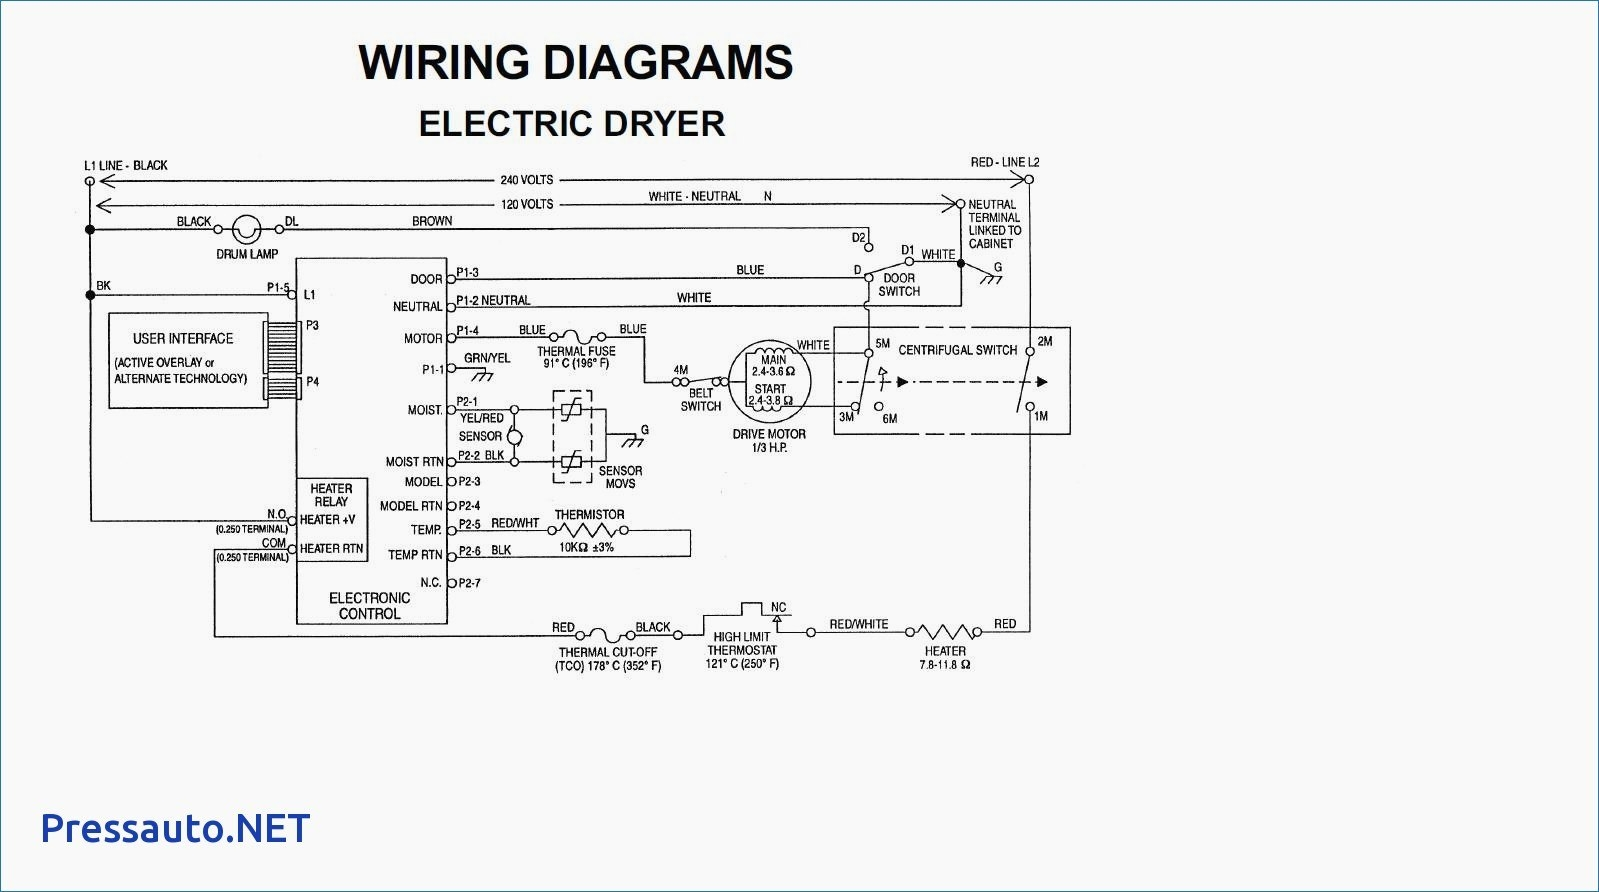 kenmore dryer power cord wiring diagram Download-Electrical Circuit Diagram Wonderful Kenmore Dryer Wiring Diagram Fitfathers Me Que Wire 37 Unique Electrical 1-l